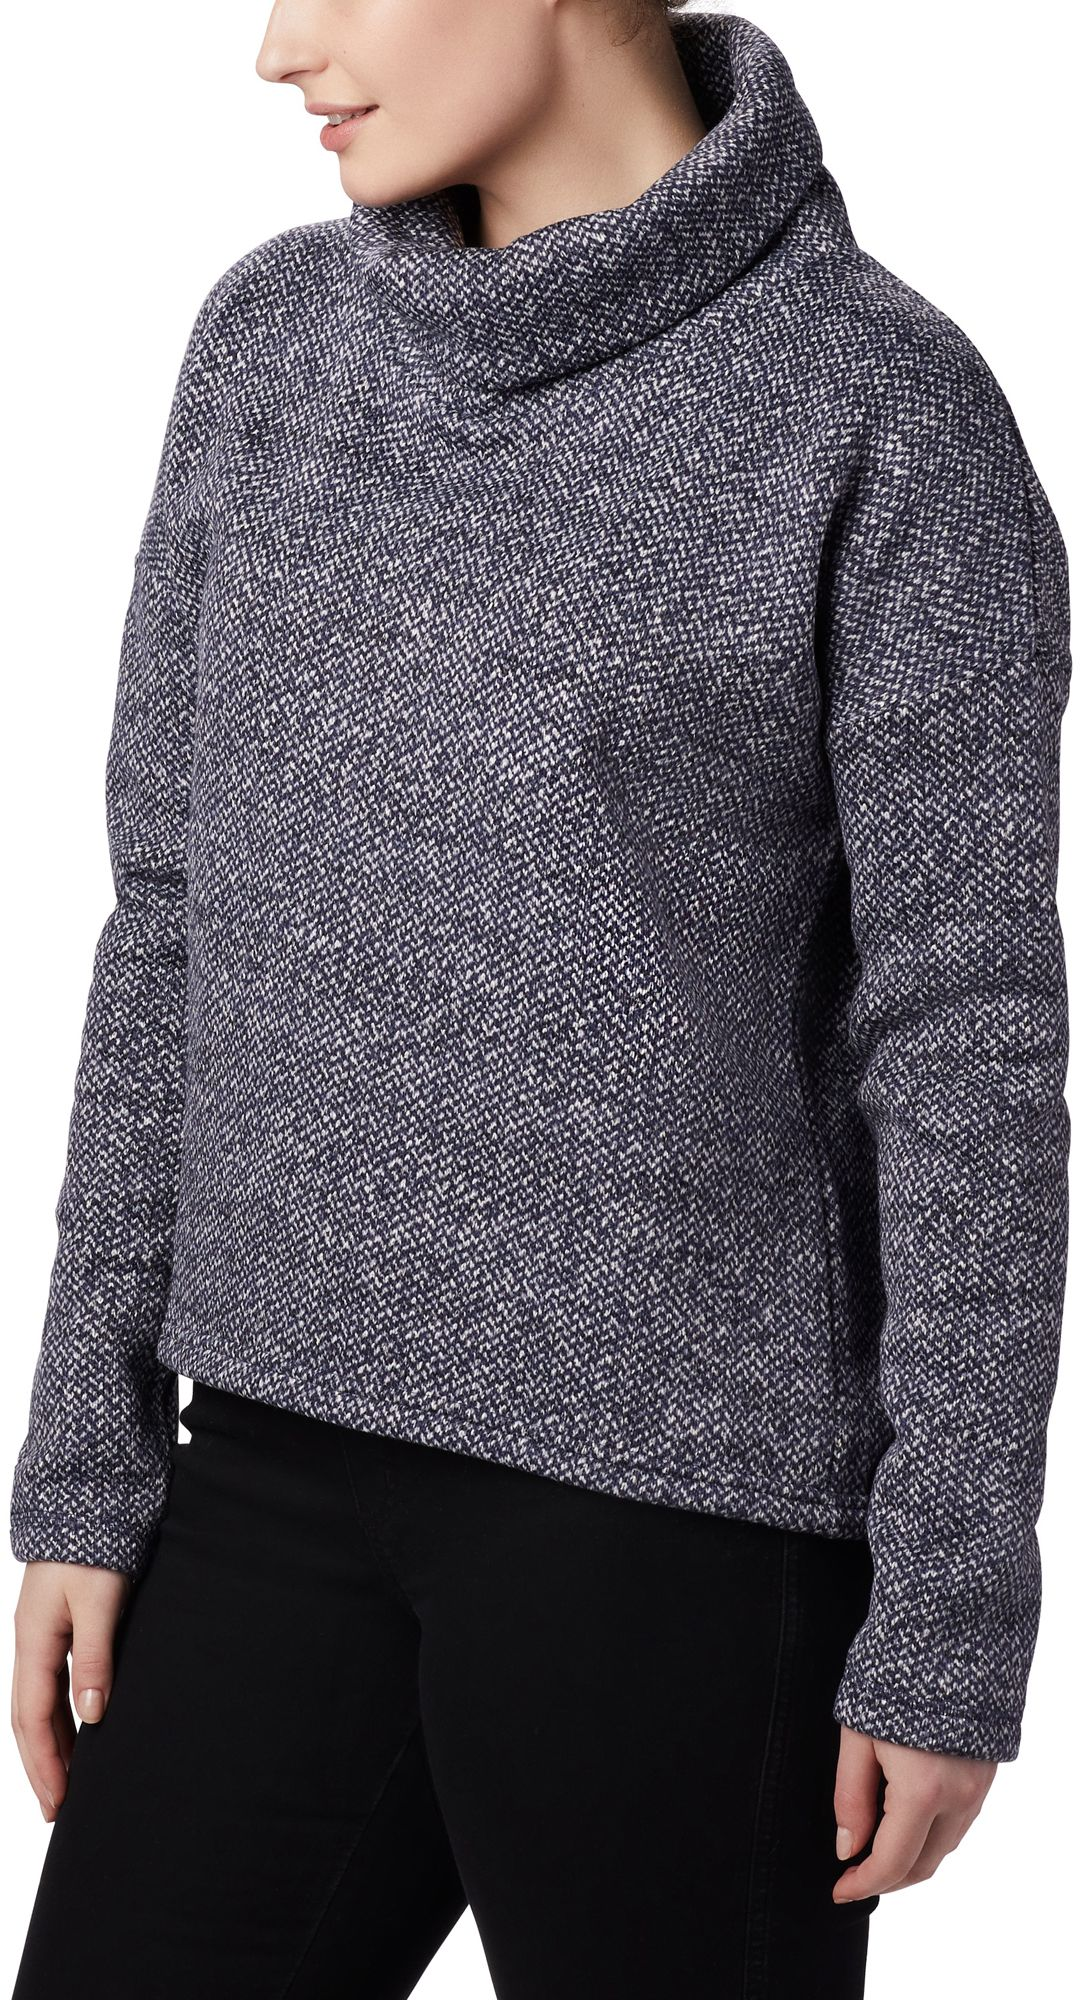 863f8d6a549 Columbia Women's Chillin Fleece Pullover Sweater